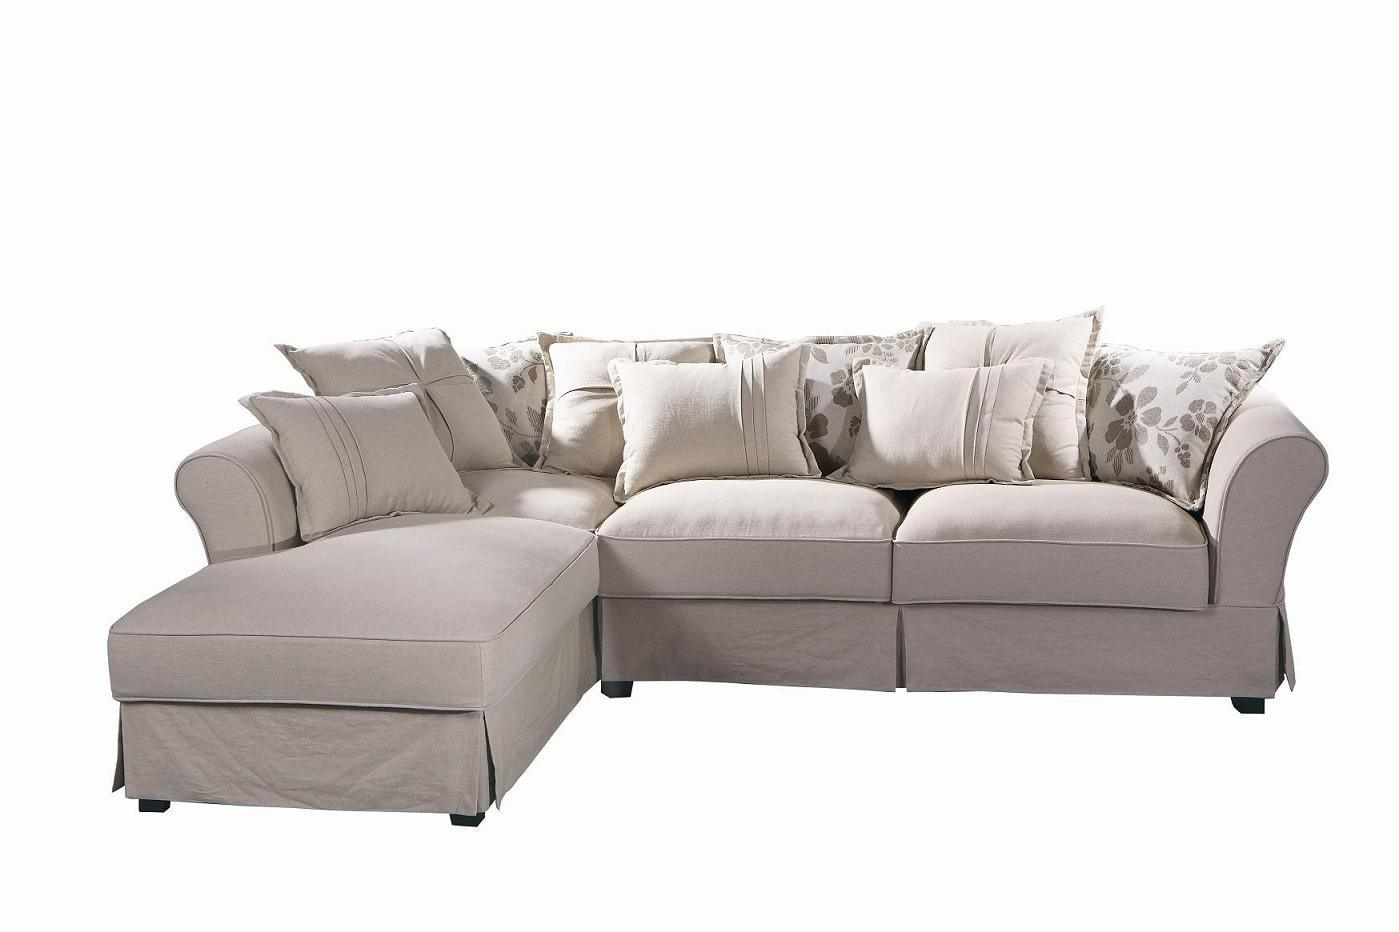 Discount sofa slipcovers cheap couch slipcovers at for Affordable furniture wholesale